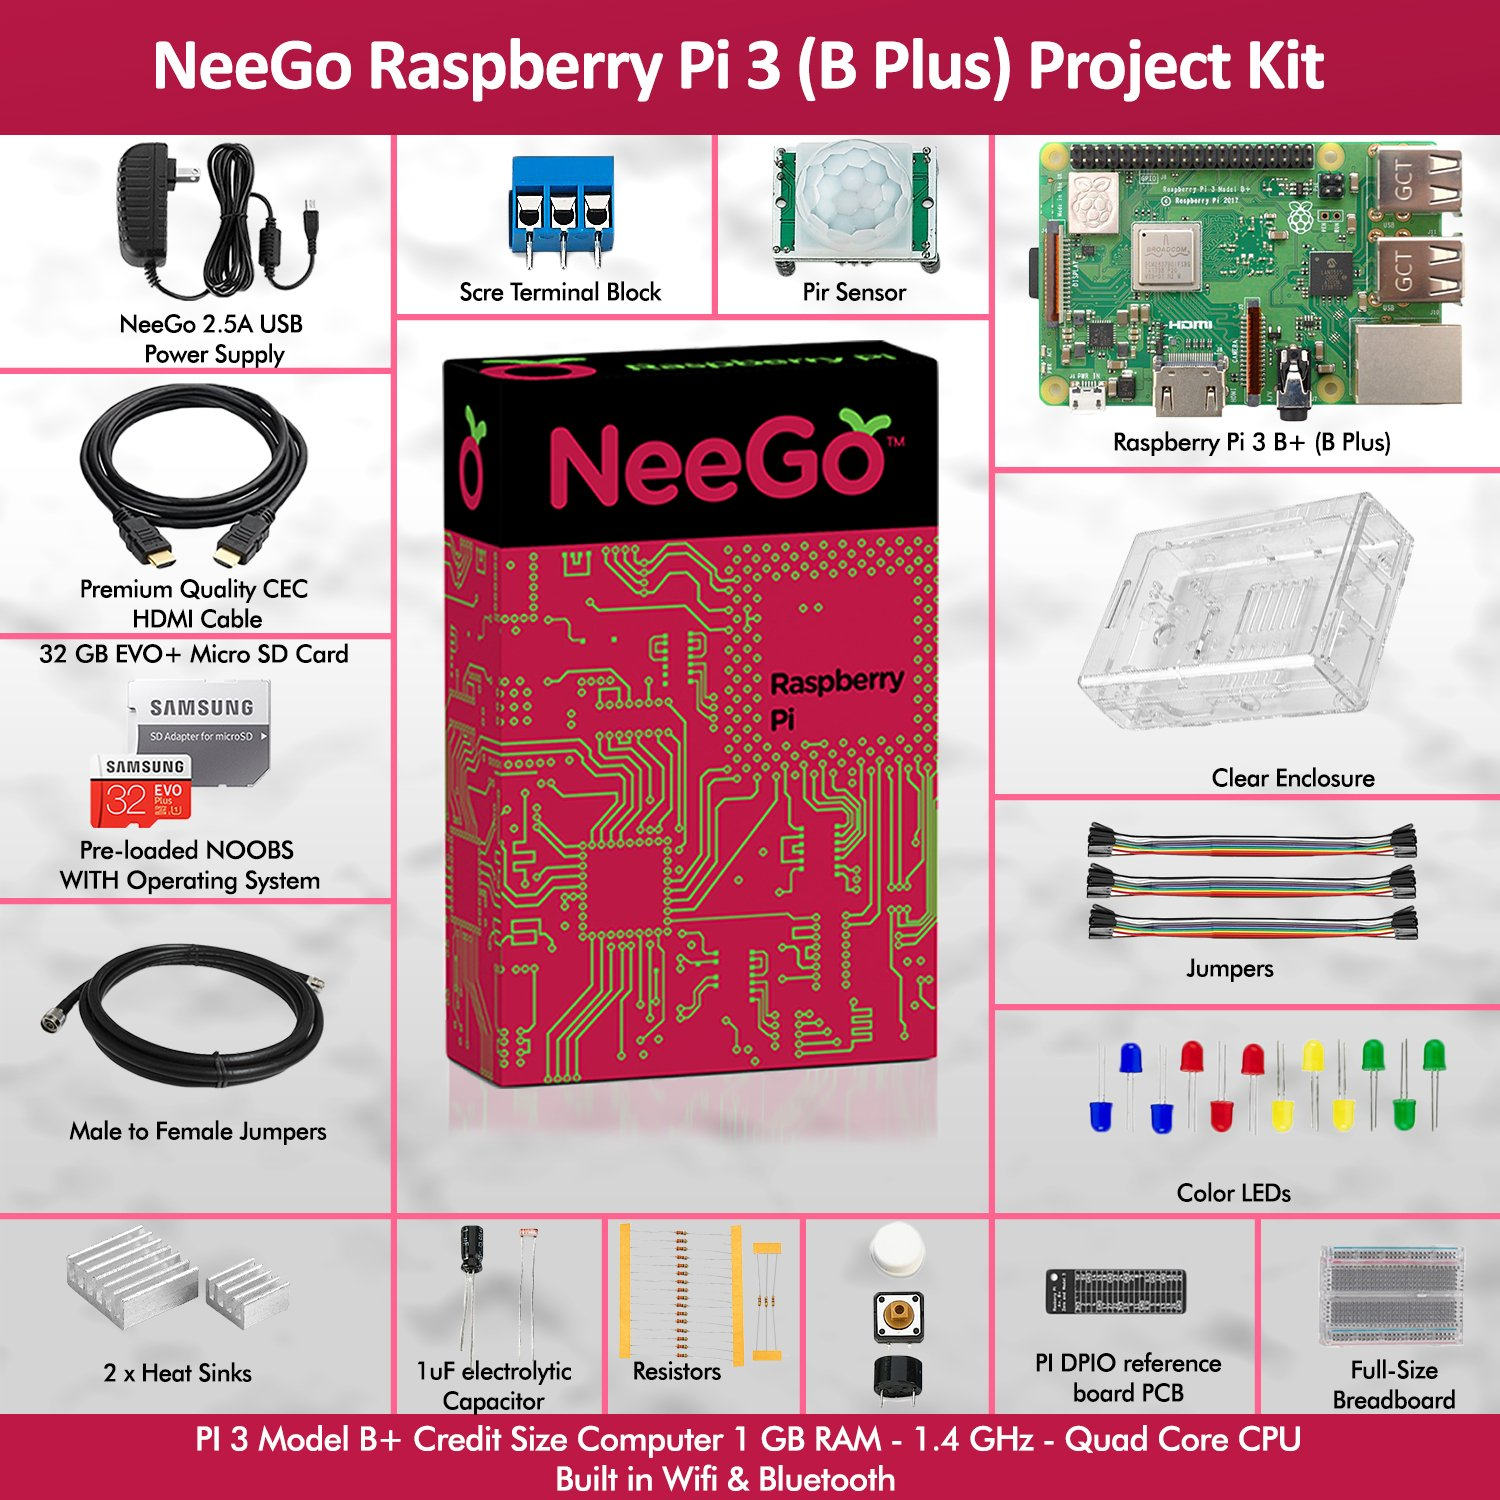 Neego Raspberry Pi 3 B+ (B Plus) Ultimate Education Starter Kit, B+ Motherboard, 32-GB Micro SD Card Preloaded With Noobs, 10-Piece Education Kit, Heatsinks, Clear Case, 2.5A Power Supply, HDMI Cable, by NeeGo (Image #2)